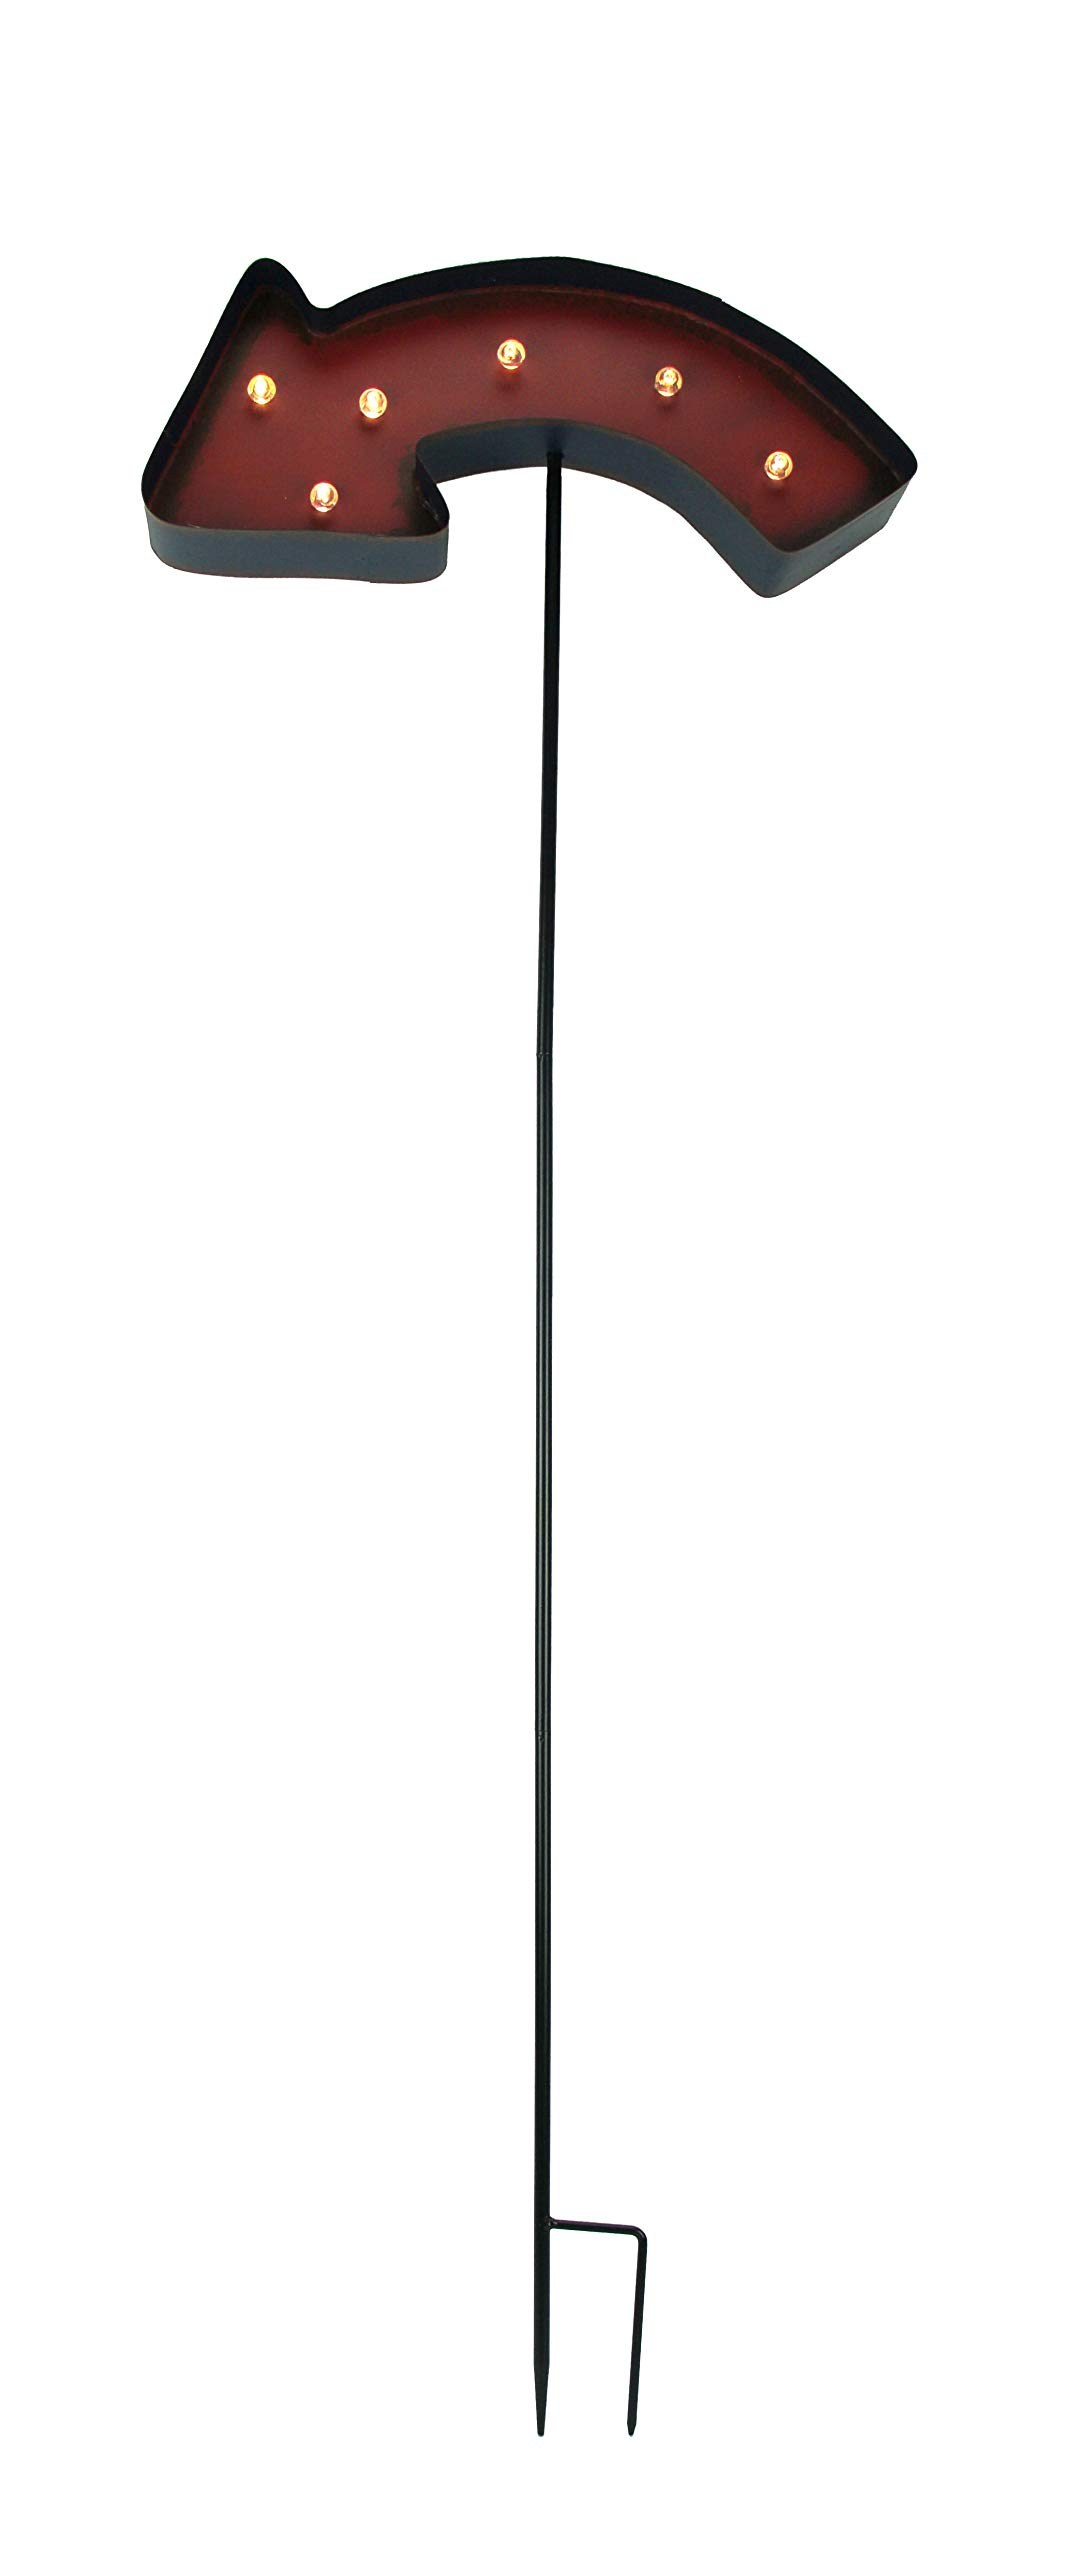 Exhart Metal Garden Stakes Led Lighted Directional Arrow Garden Stake 16 X 43.5 X 2.25 Inches Red